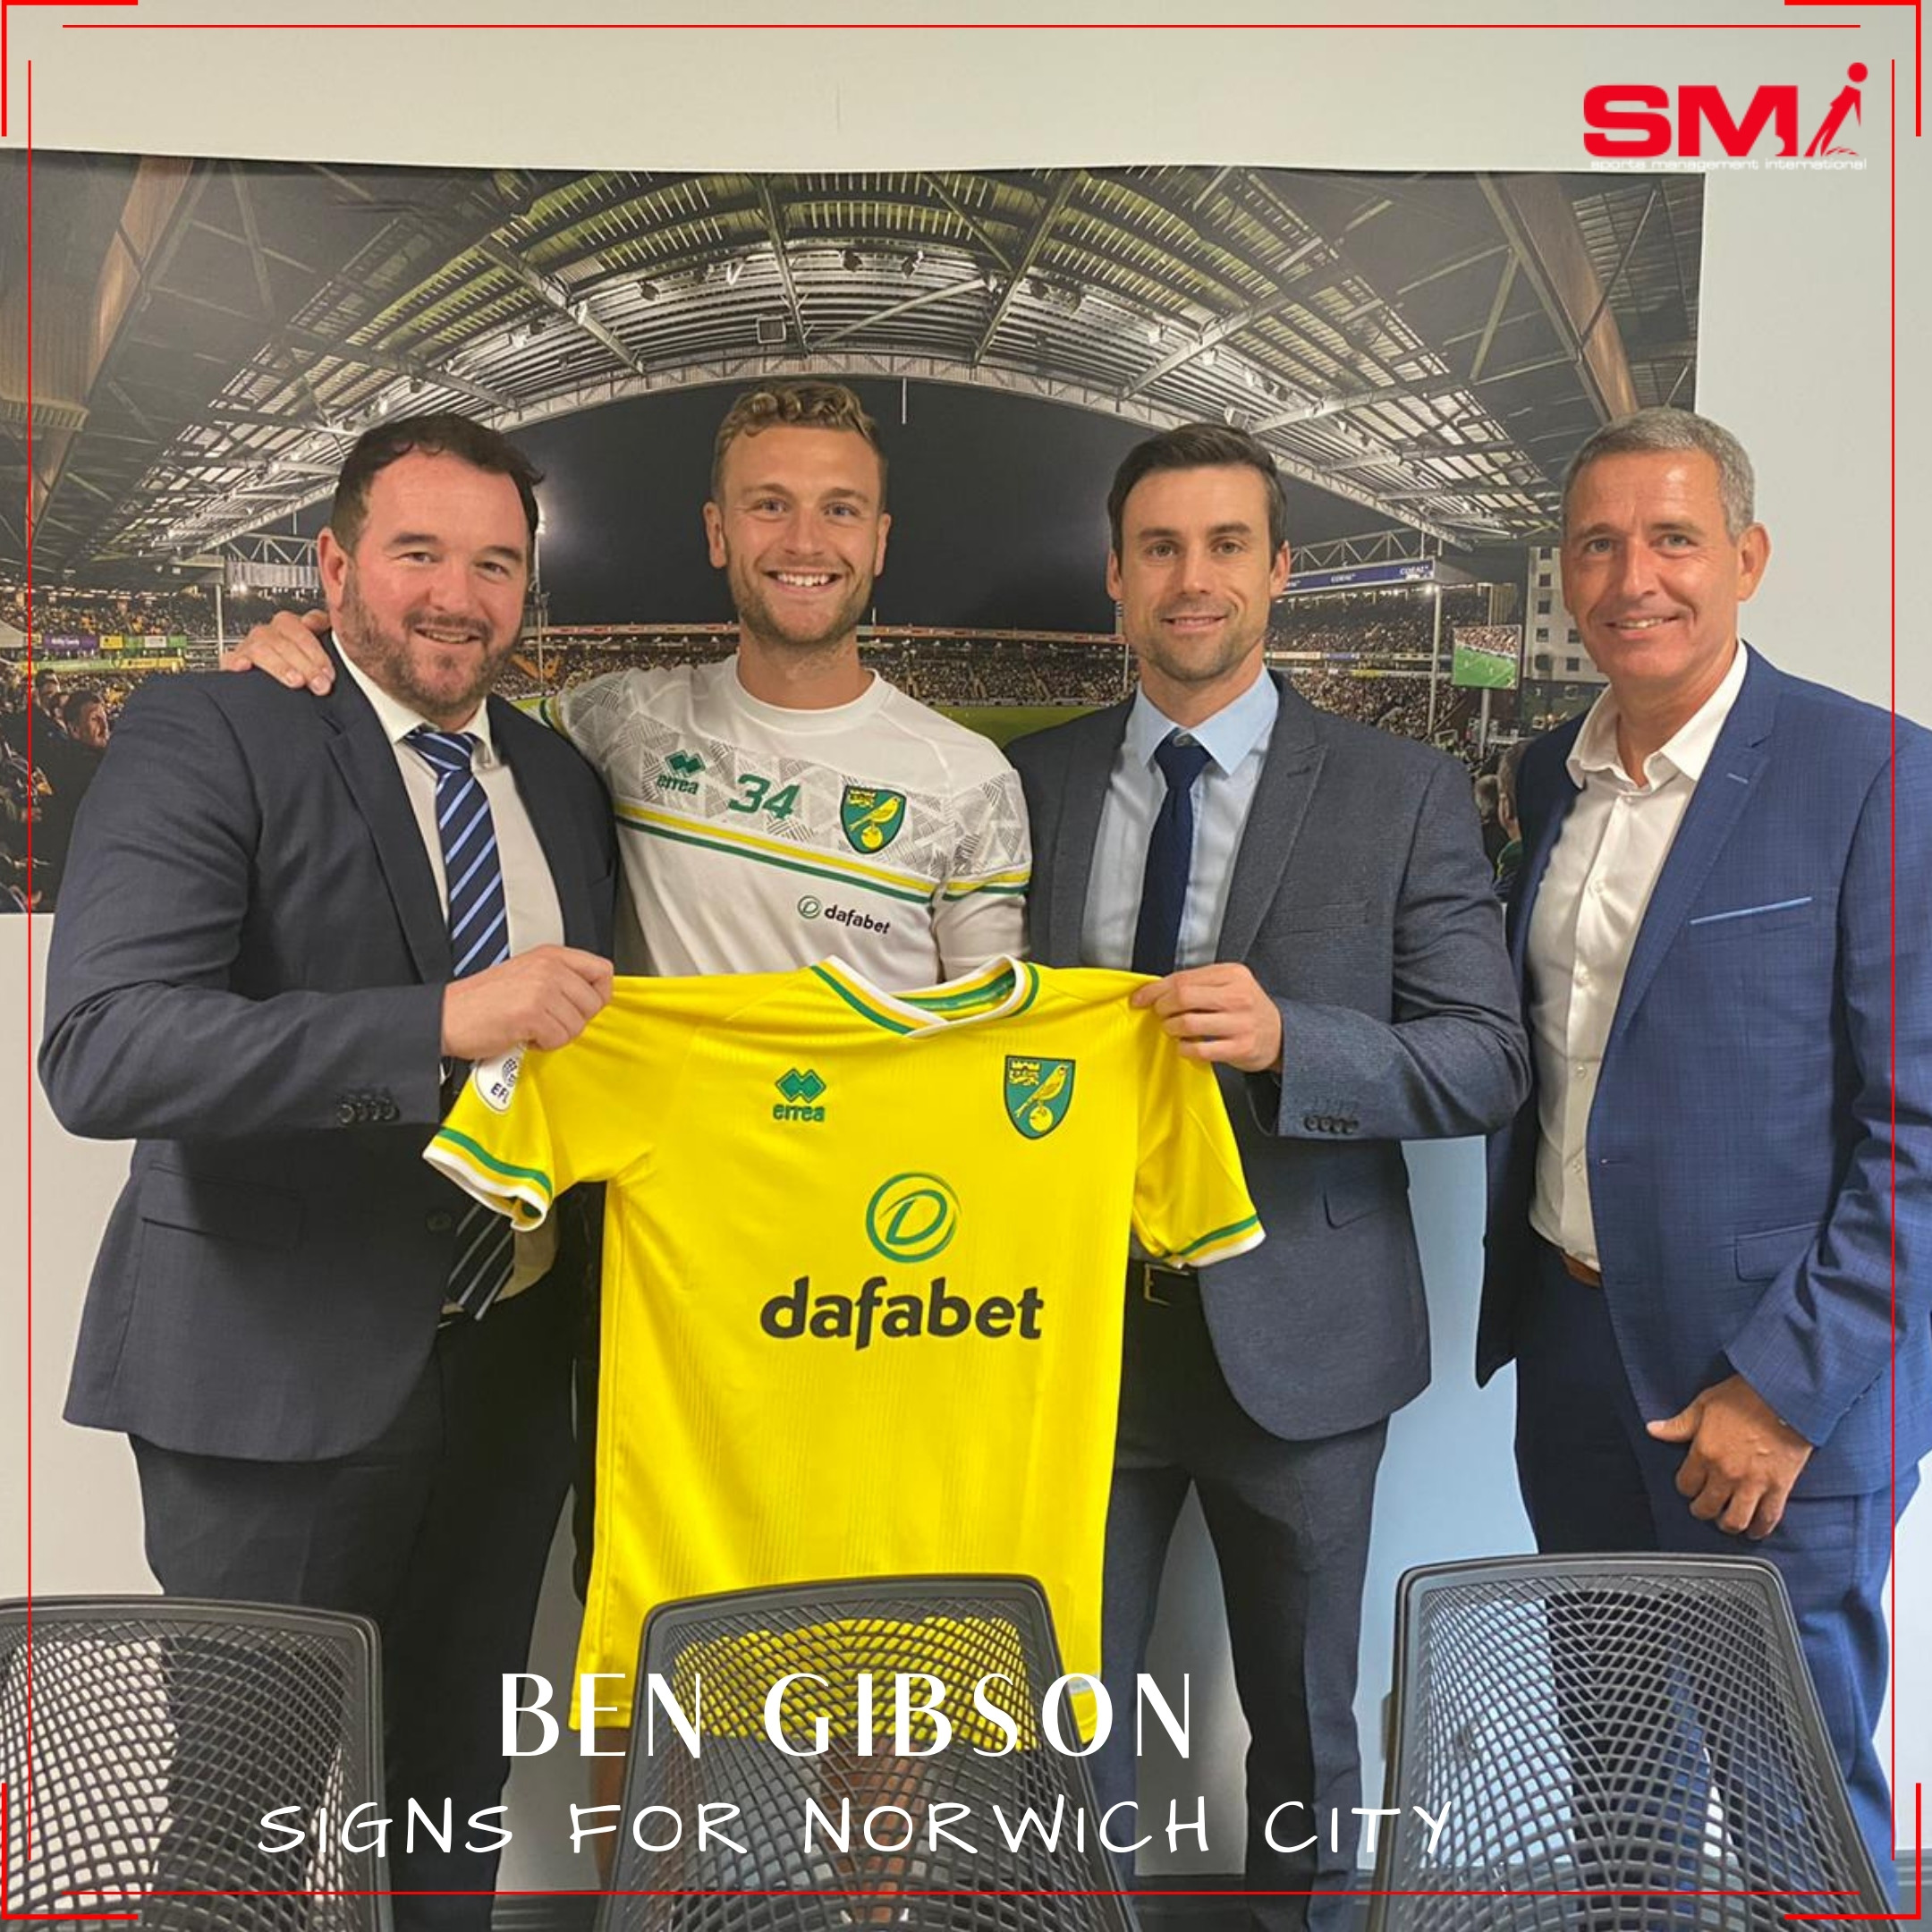 Ben Gibson, Norwich City's New Number 34